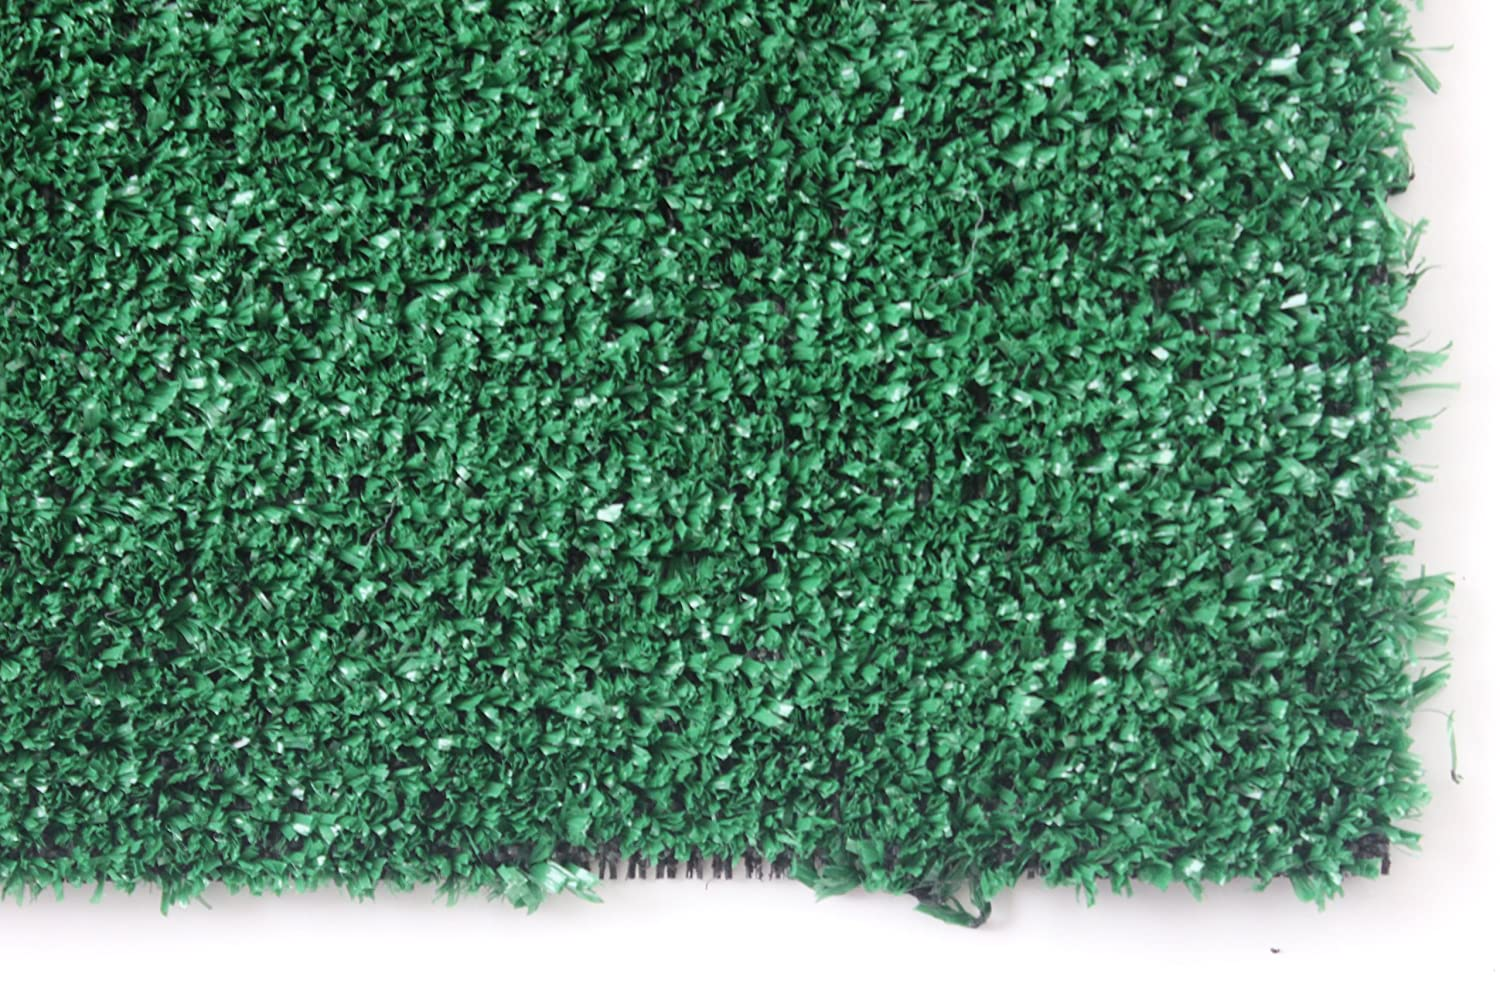 Amazon.com : 12\'x24\' LAWN GREEN INDOOR/OUTDOOR ARTIFICIAL TURF ...